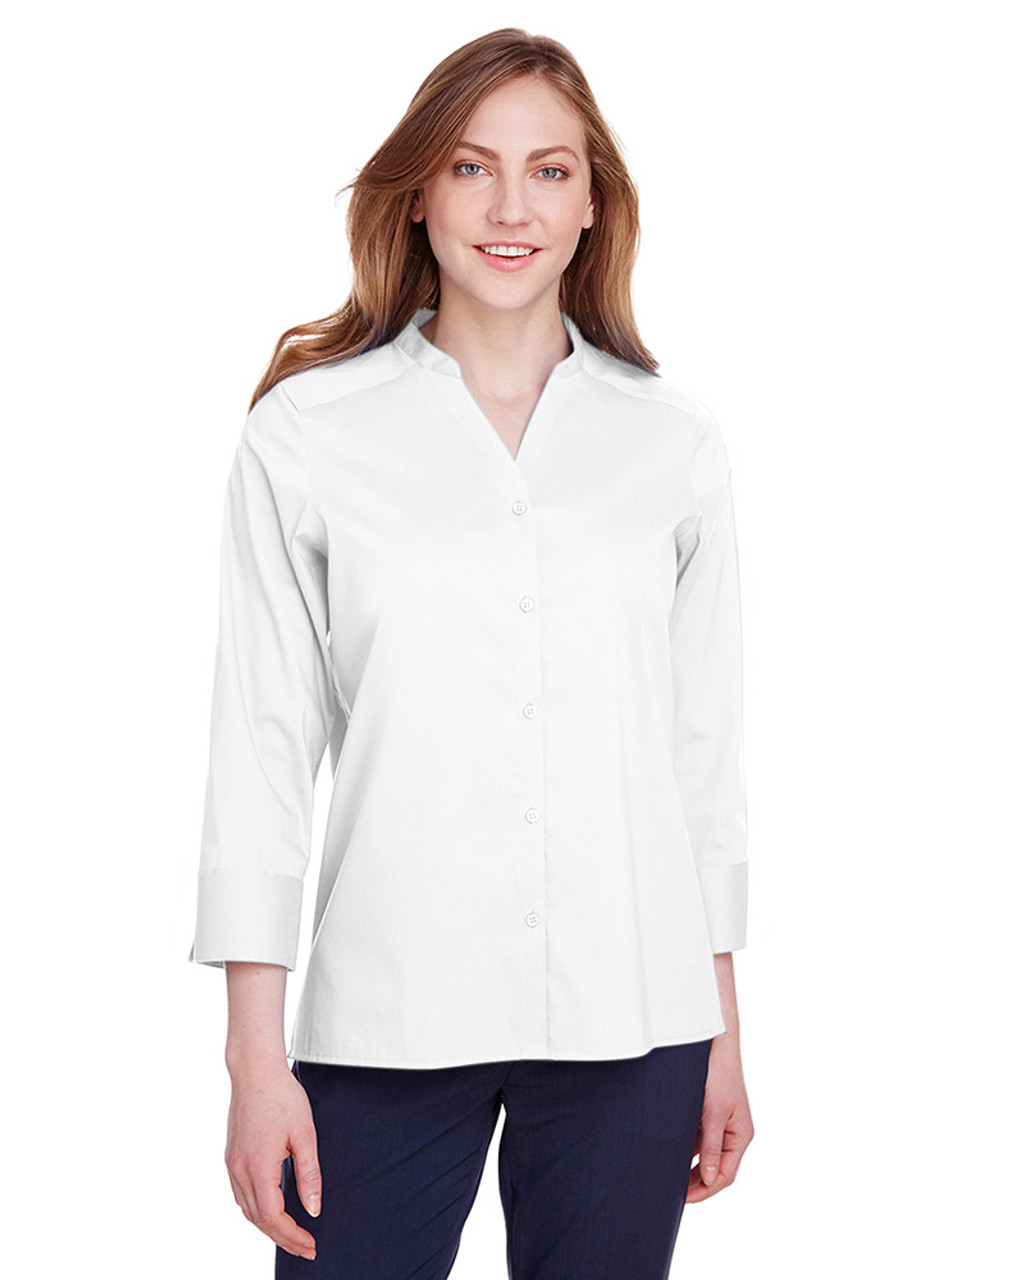 White - DG560W Devon & Jones Ladies' Crown Collection™ Stretch Broadcloth 3/4 Sleeve Blouse | Blankclothing.ca